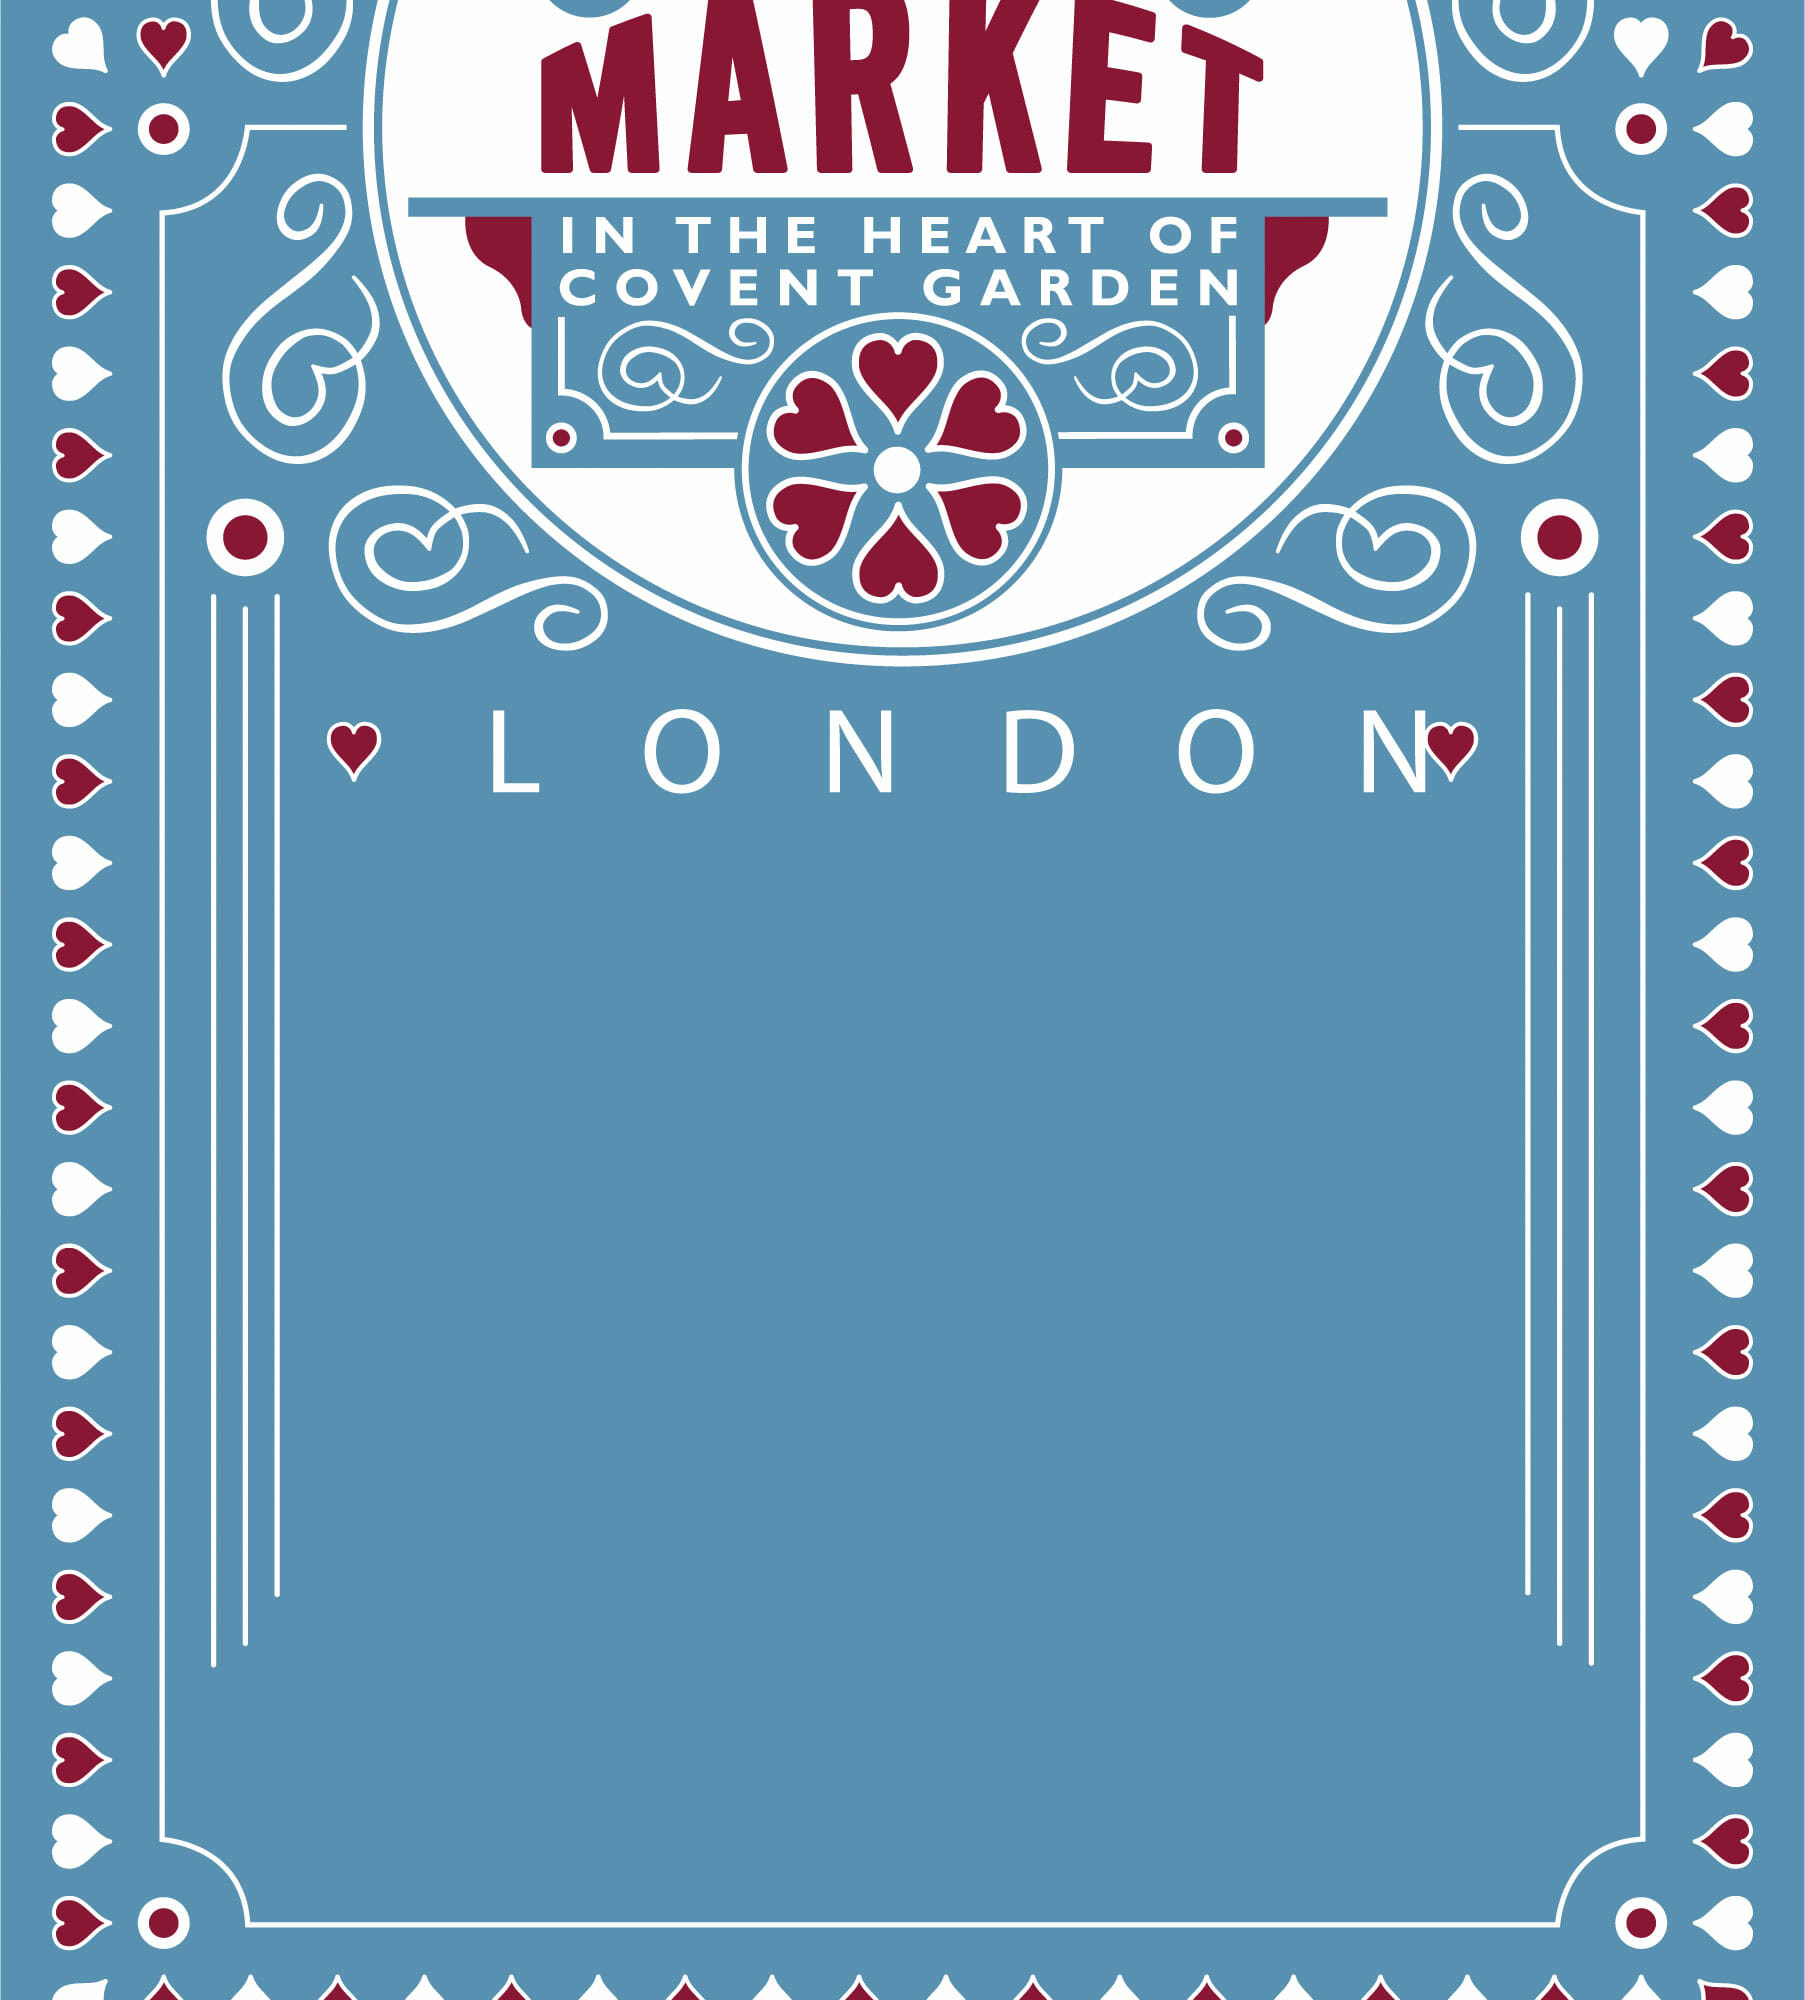 jubilee-market-london-bg